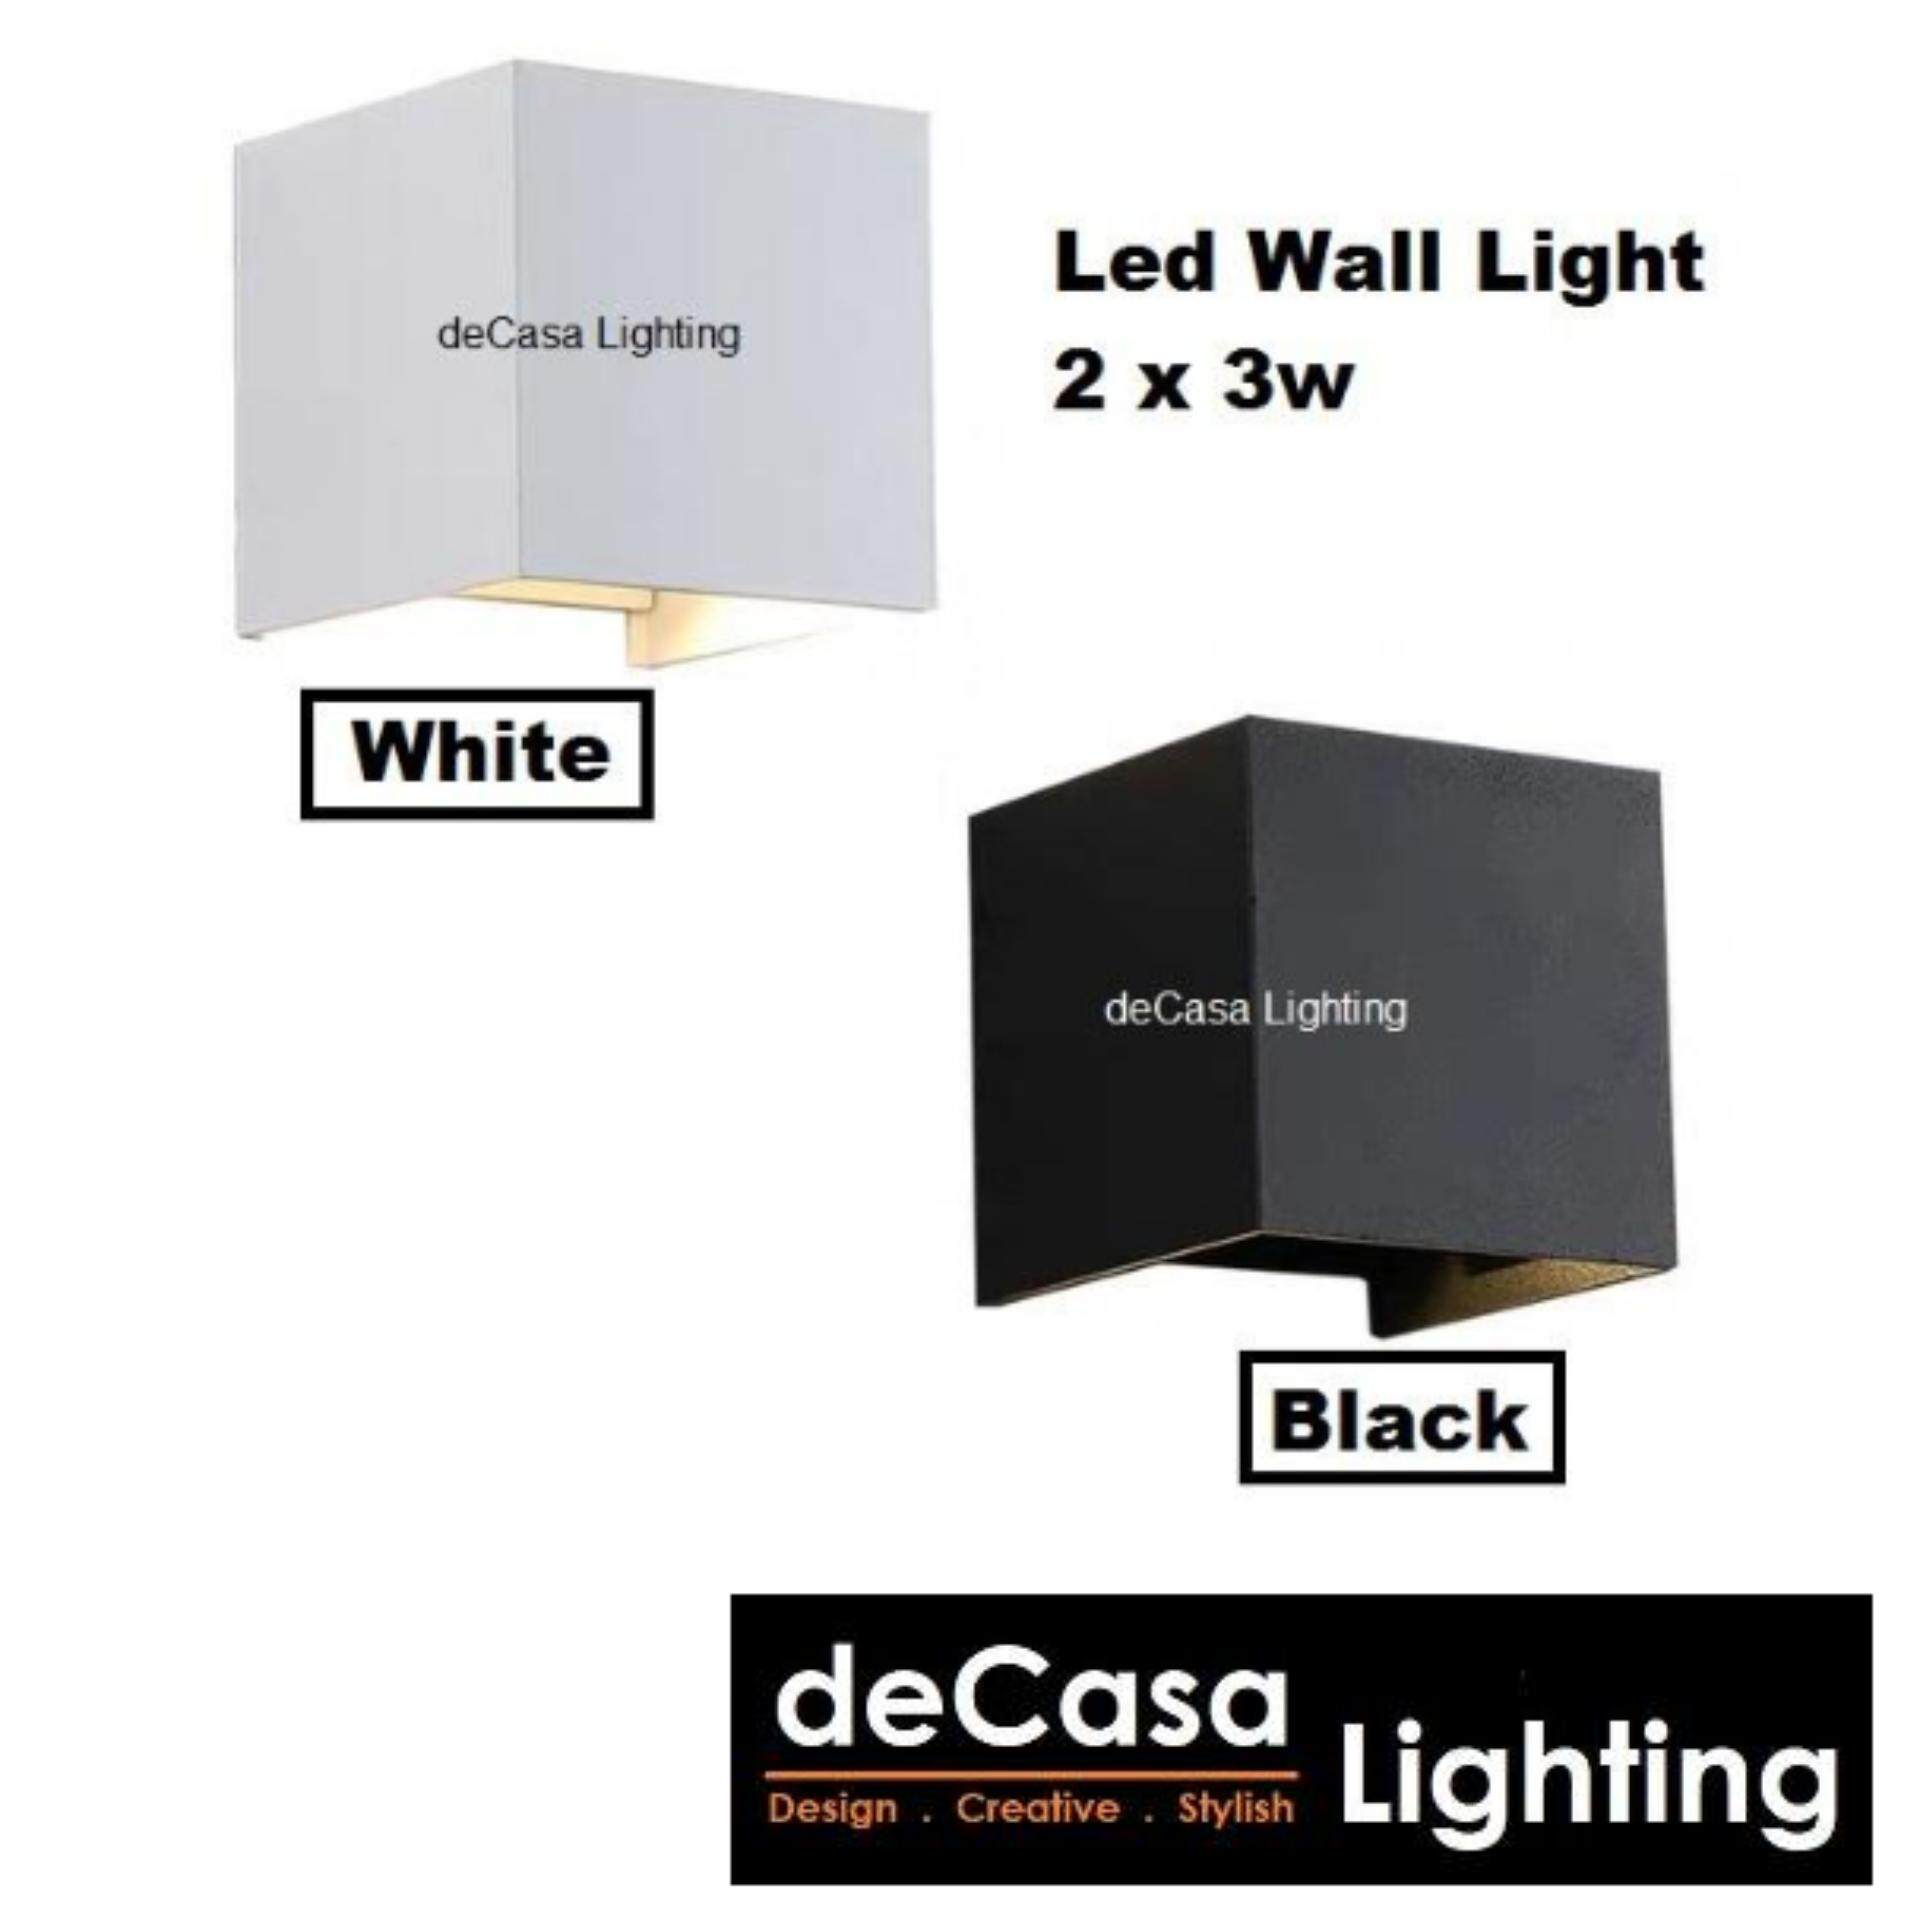 Outdoor Wall Light Special Effect Led Wall Lamp Black / White  Aluminium Wall Light 2 x 3w Led  Warm White Lampu Dinding (ACC-SZ-2002-6W-BK / O-6914-2-WH)